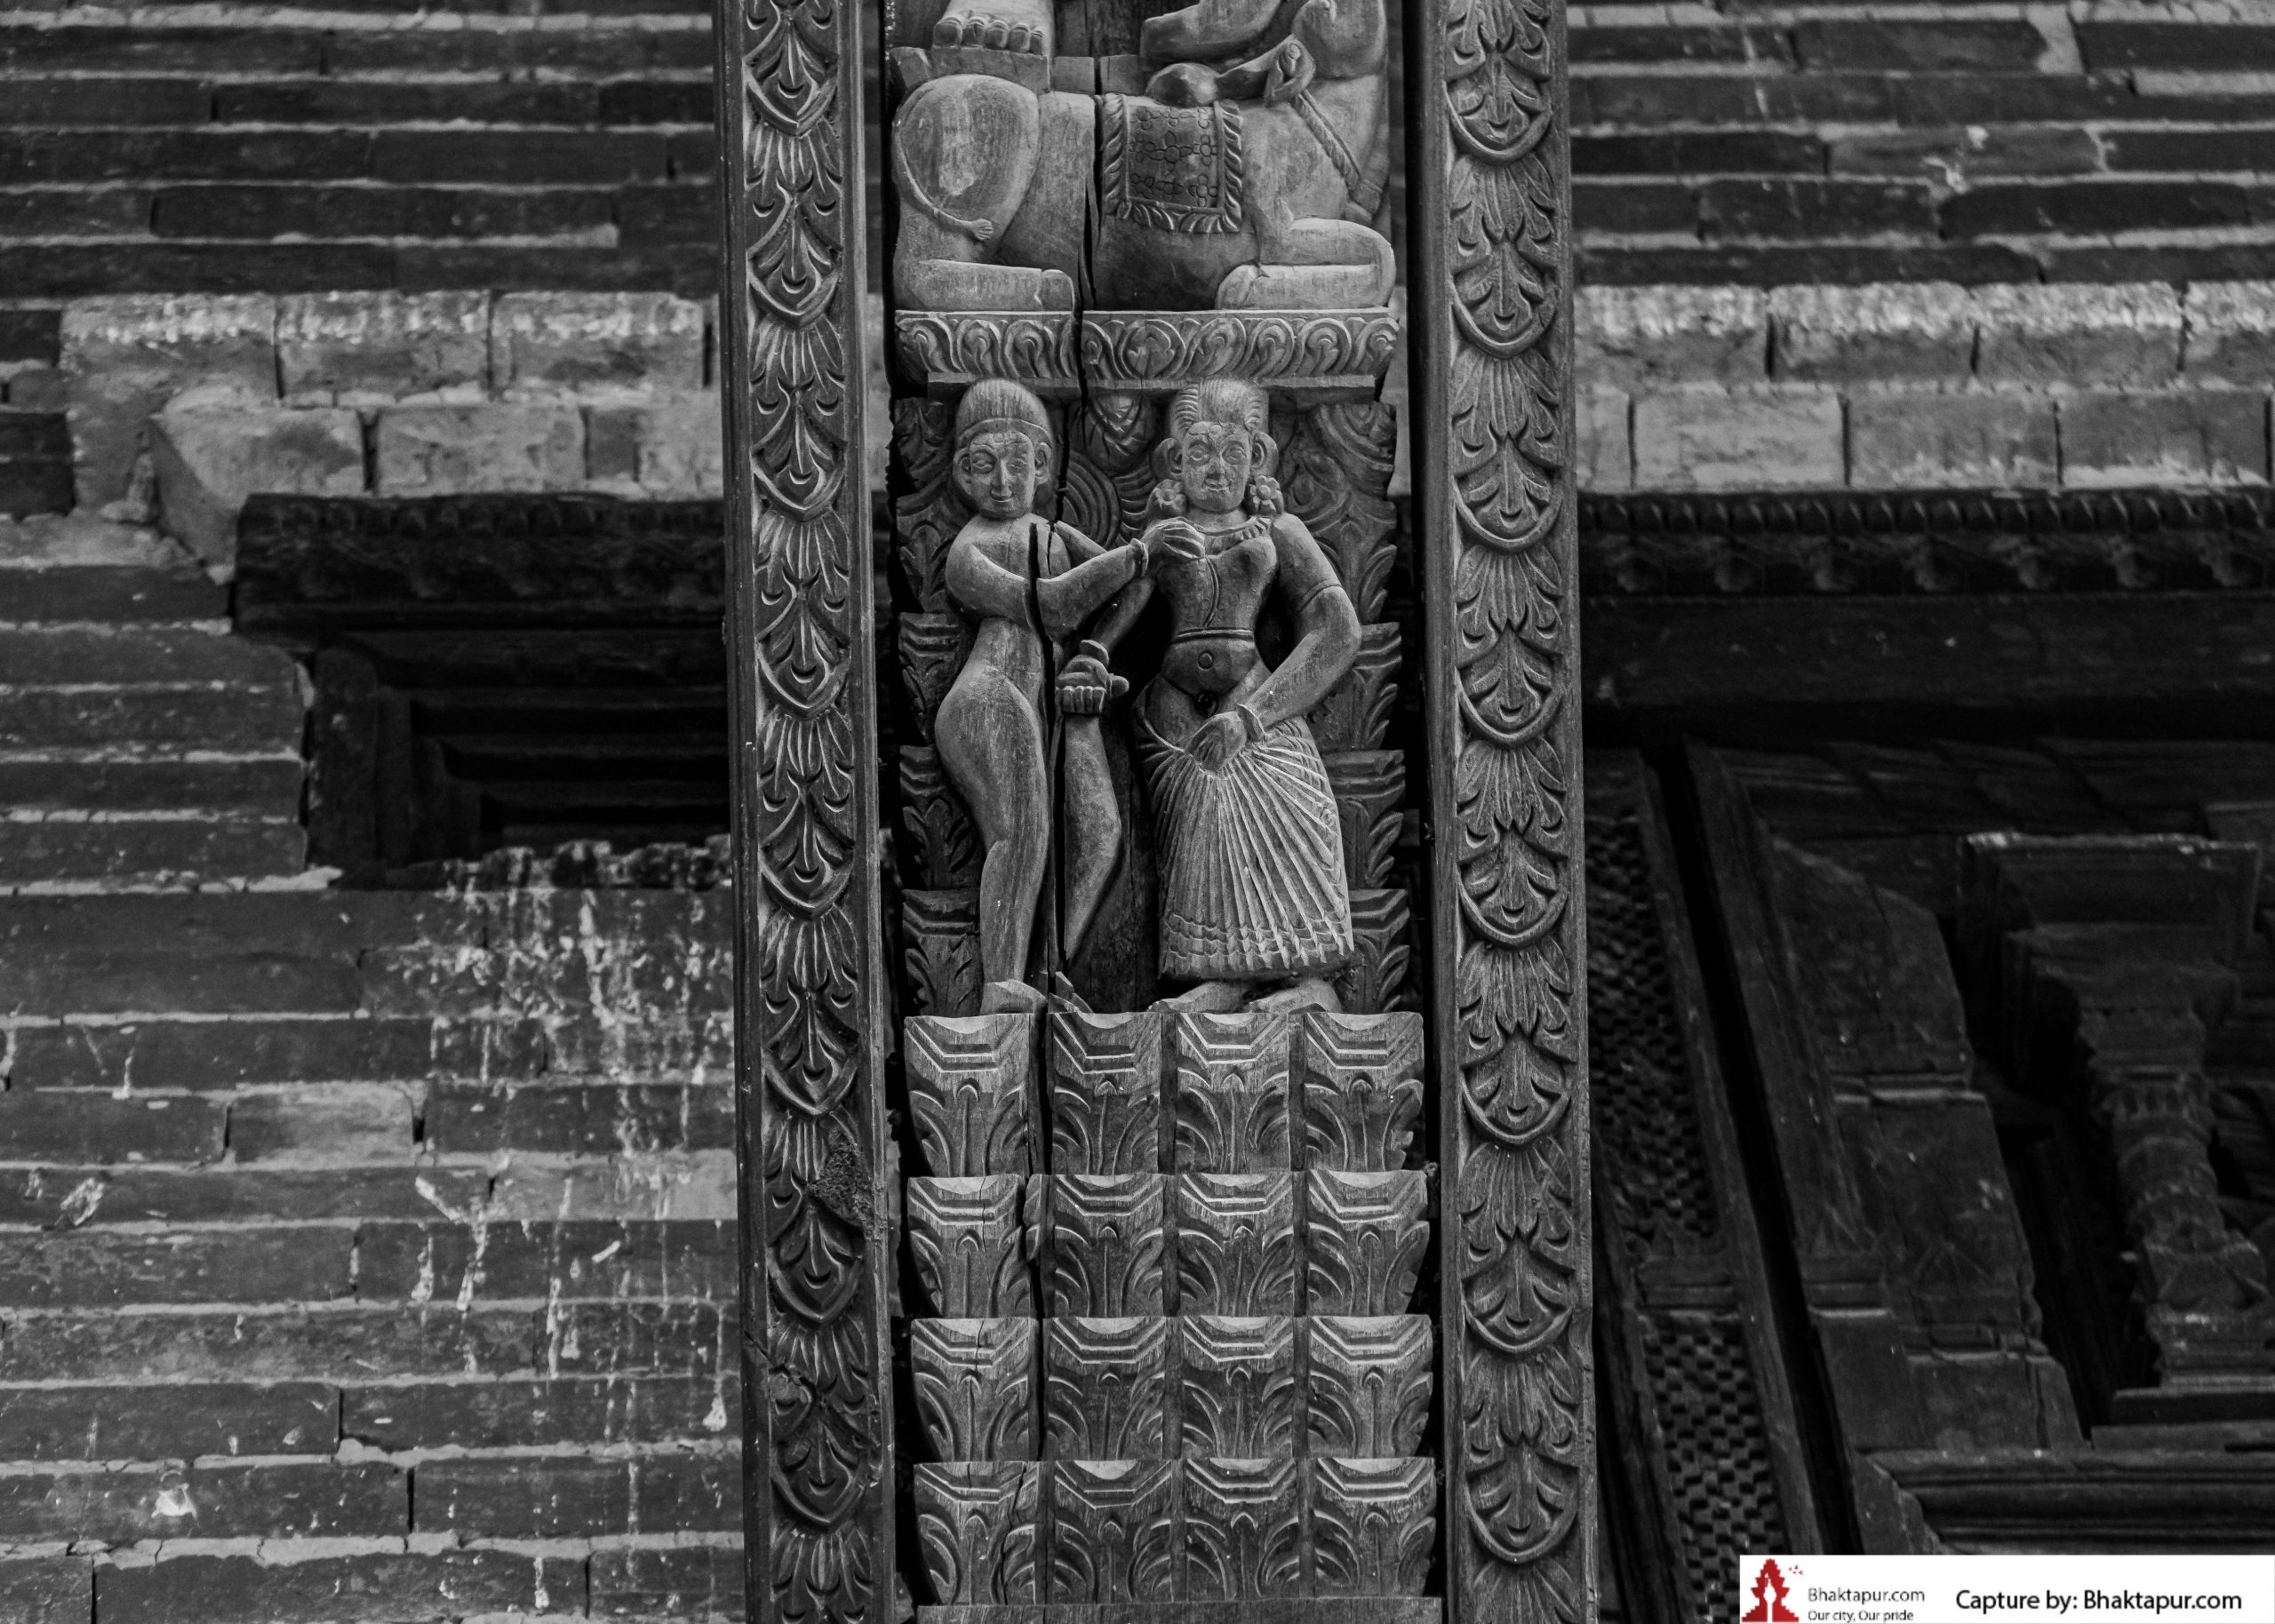 https://www.bhaktapur.com/wp-content/uploads/2021/08/erotic-carving-103-of-137-scaled.jpg